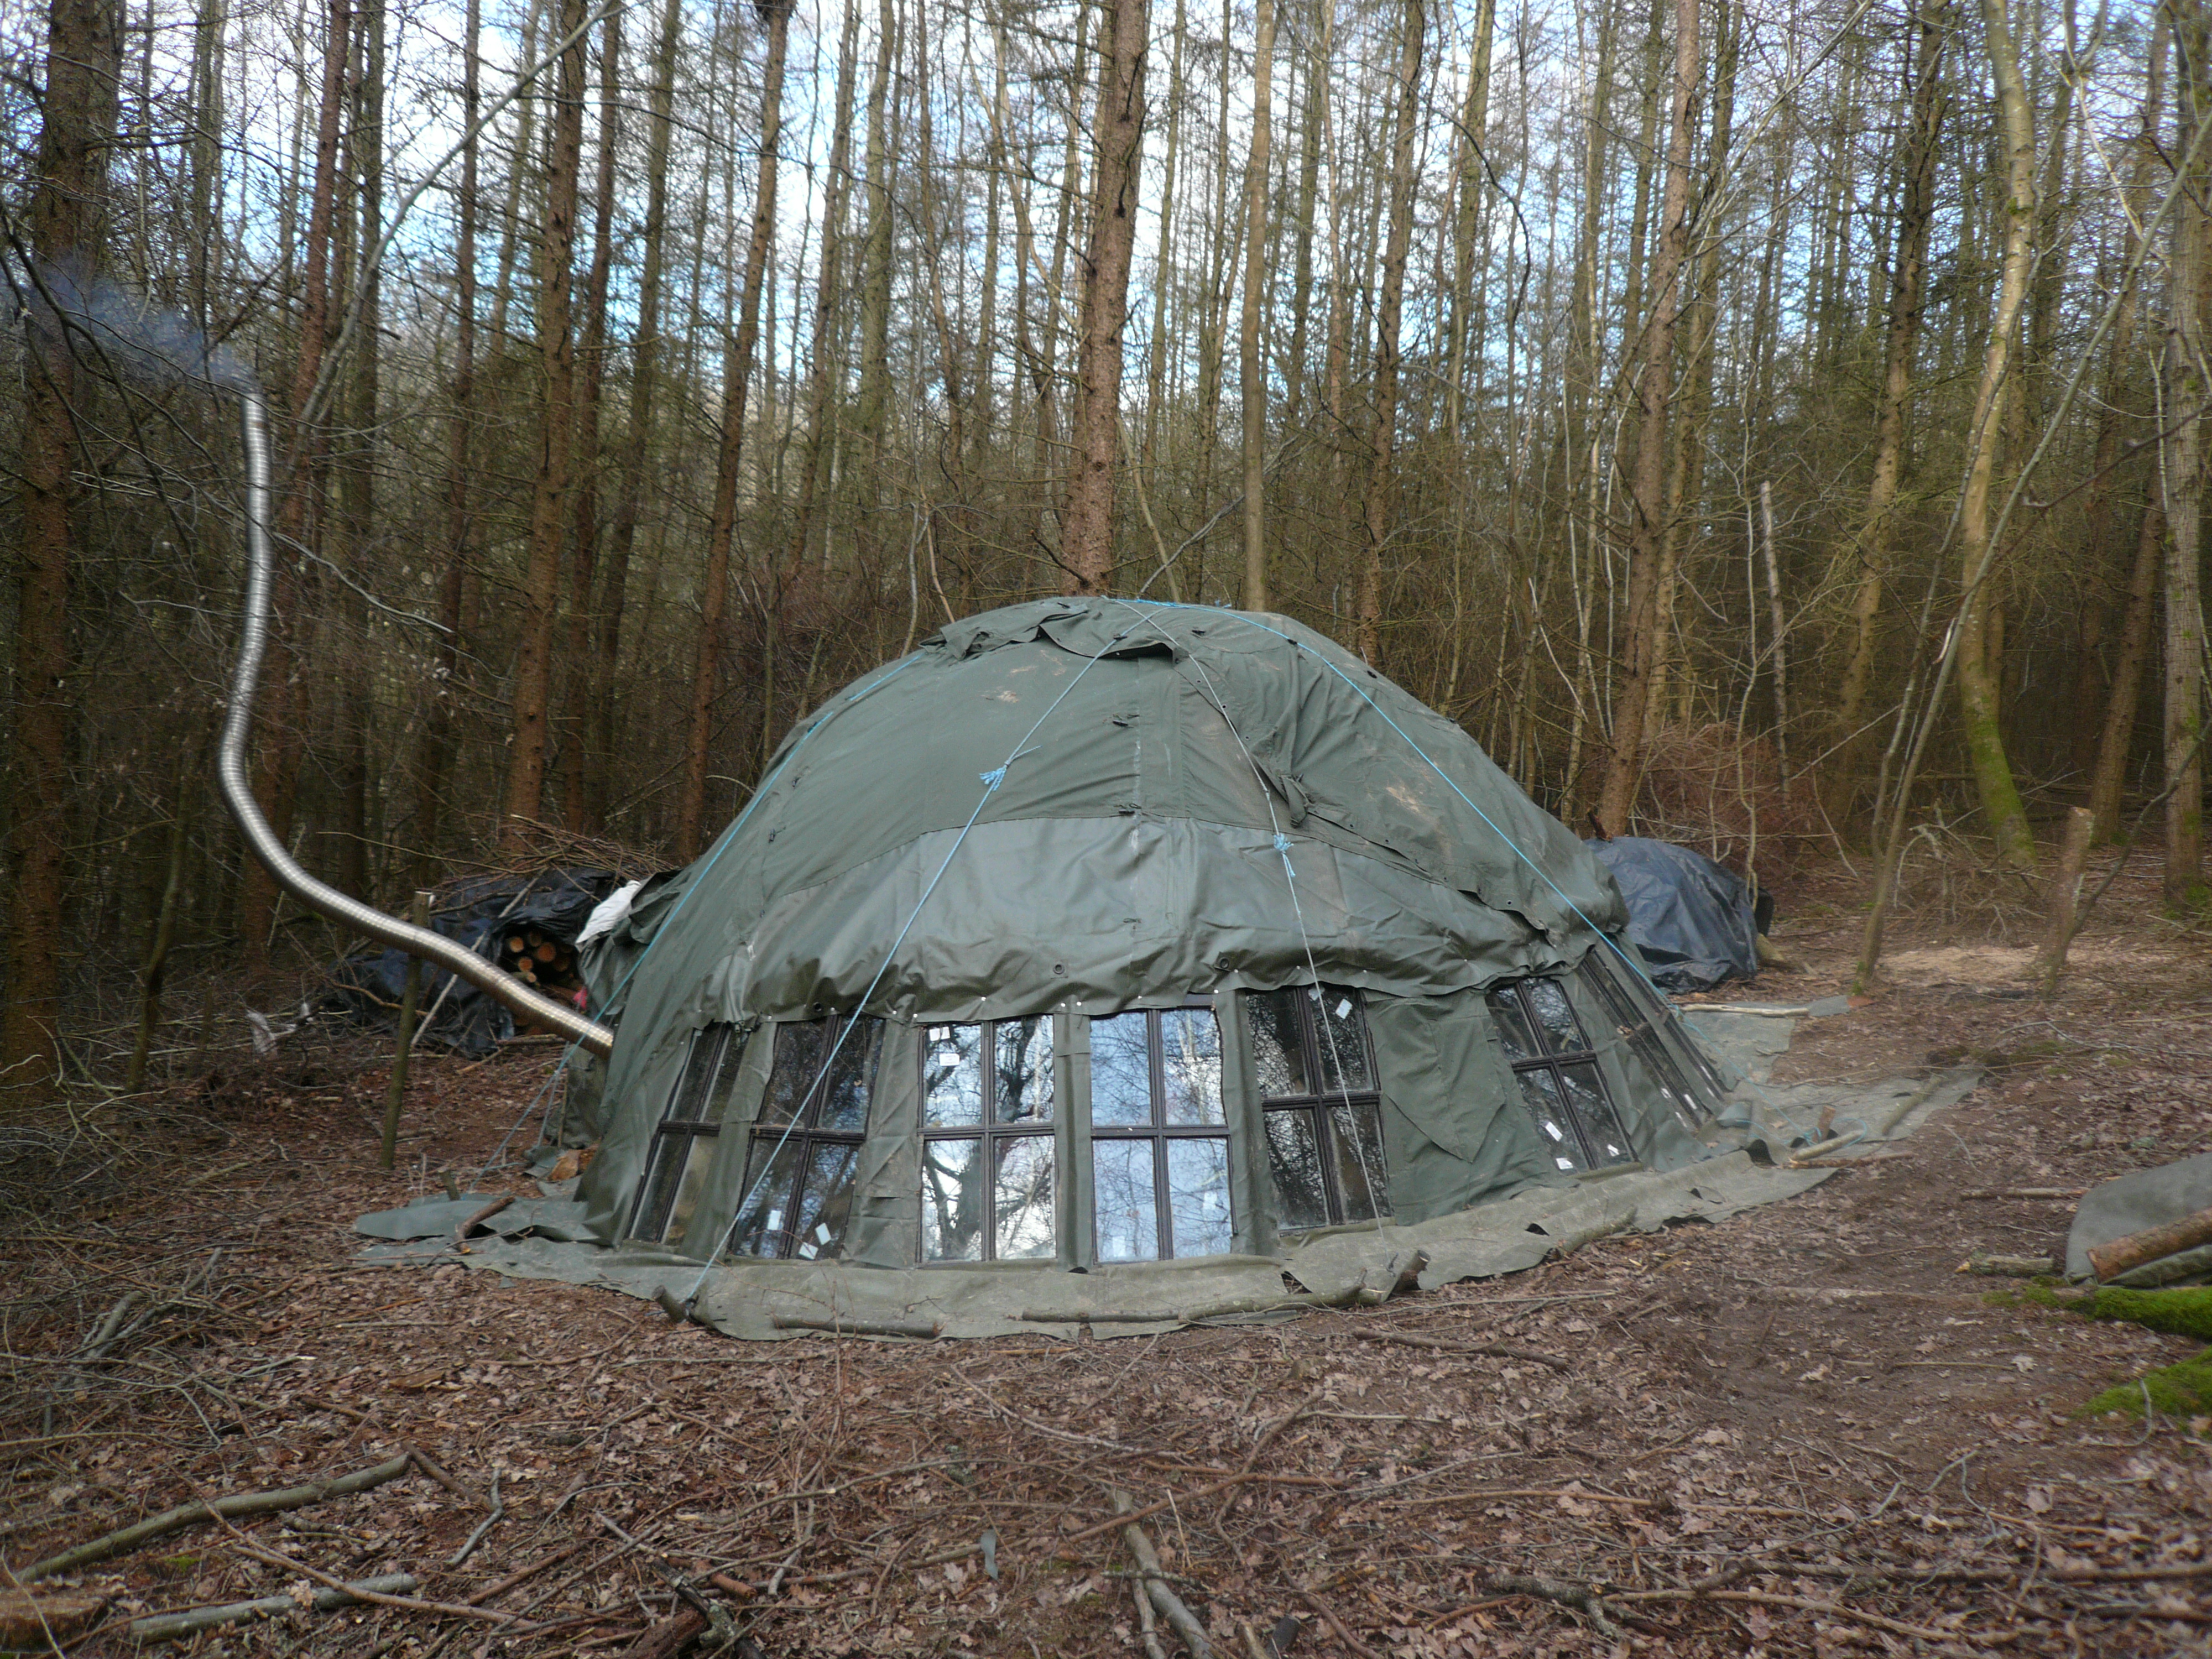 photos of bender tent construction - greenearth - people